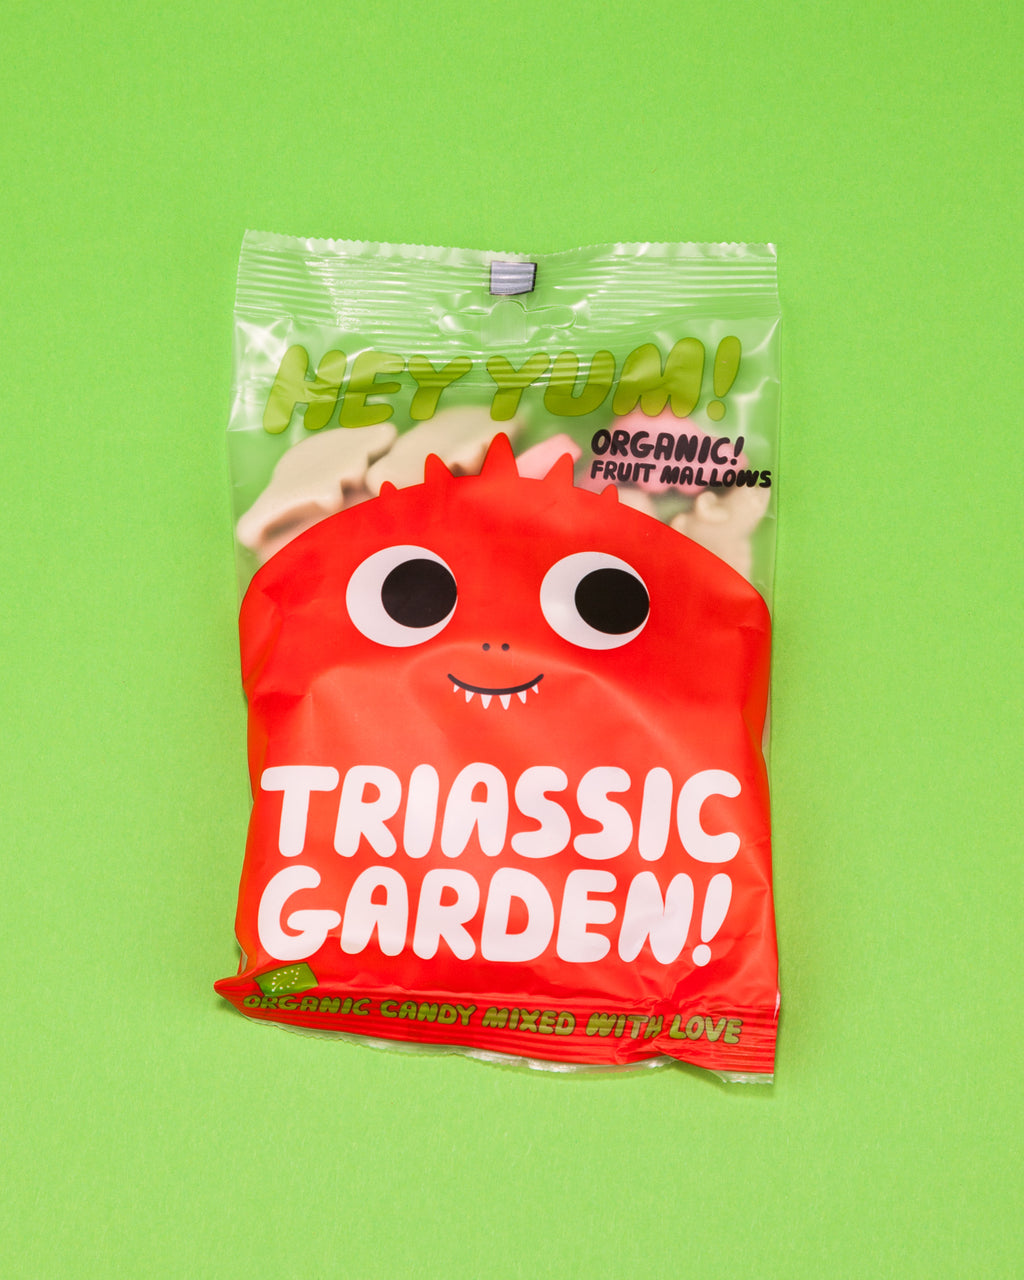 TRIASSIC GARDEN!